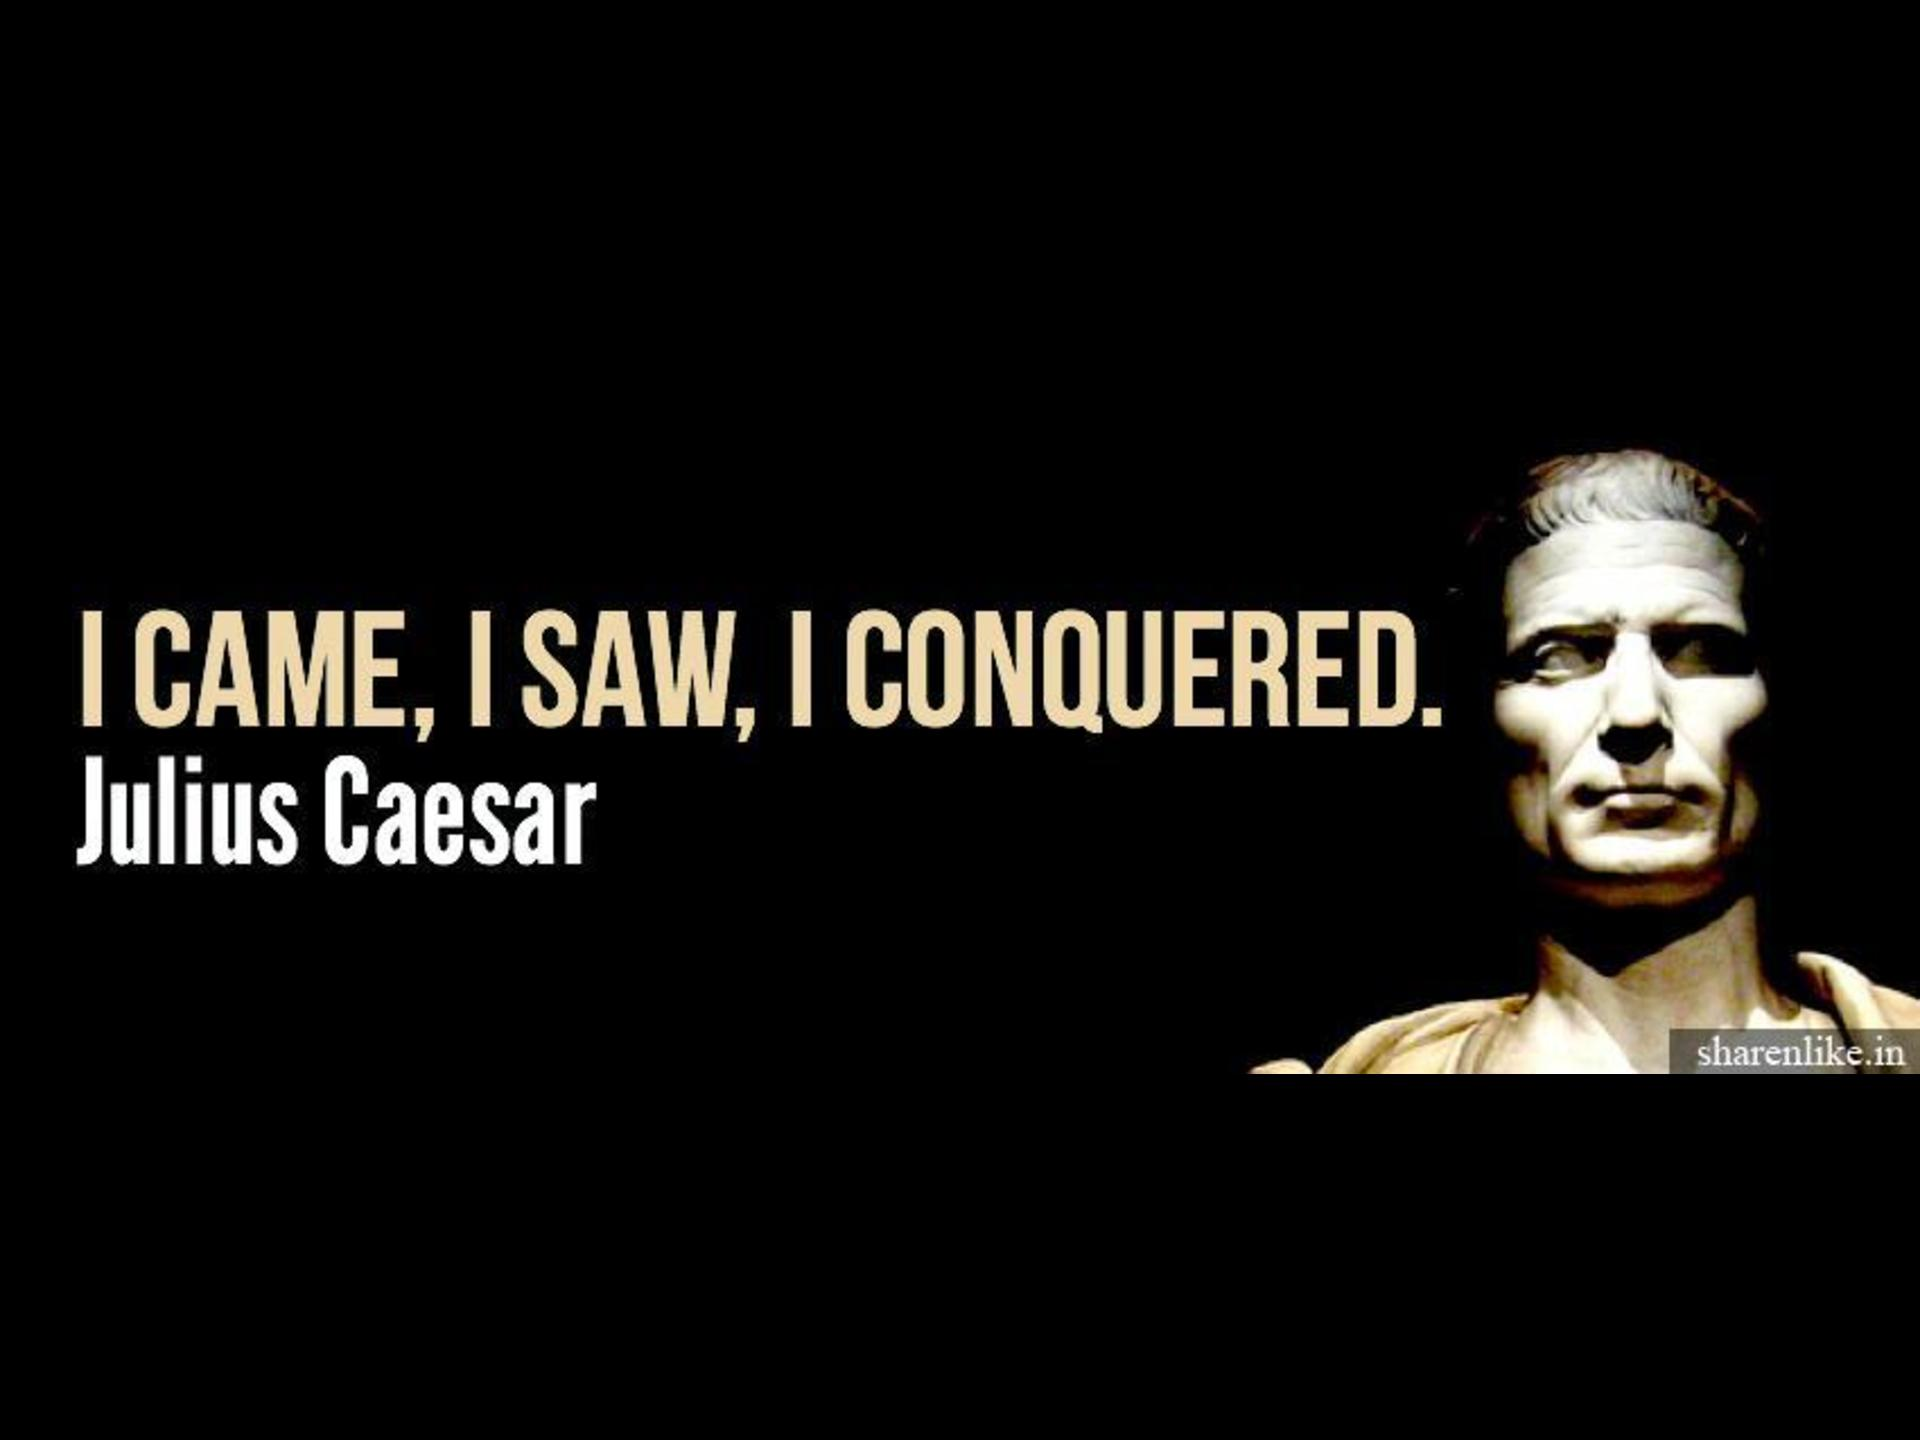 Julius Caesar Wallpaper